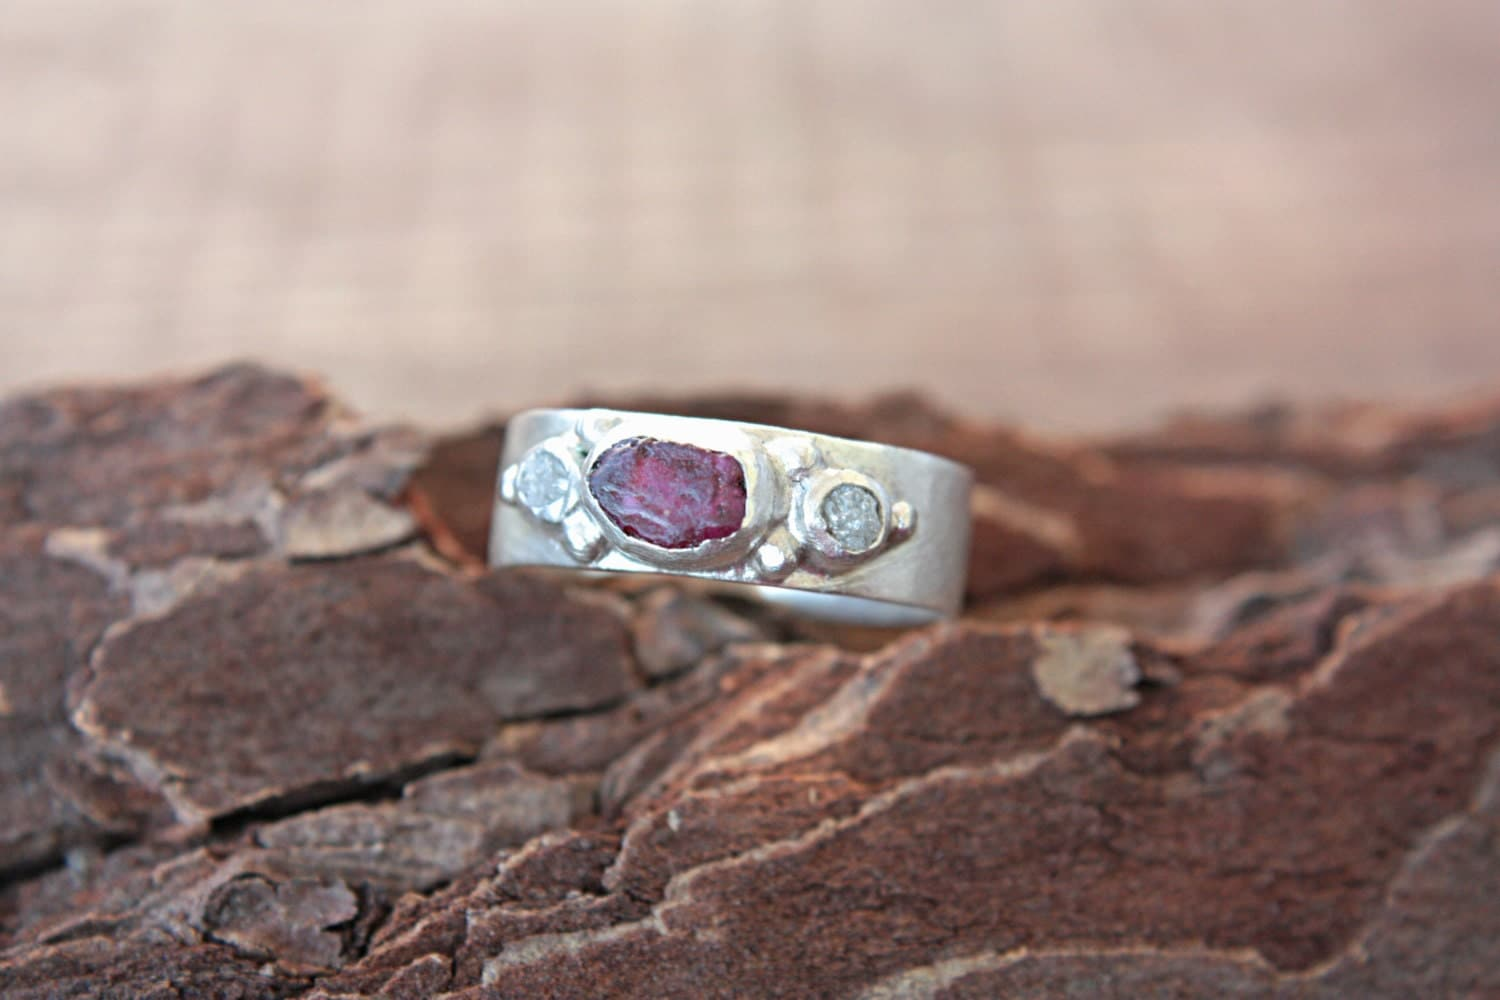 Rough Diamonds Rough Ruby Ring Sterling Silver Raw Diamond Raw Ruby Engagement Ring Size 7 1/4 Silversmithed Metalsmithed - ManariDesign